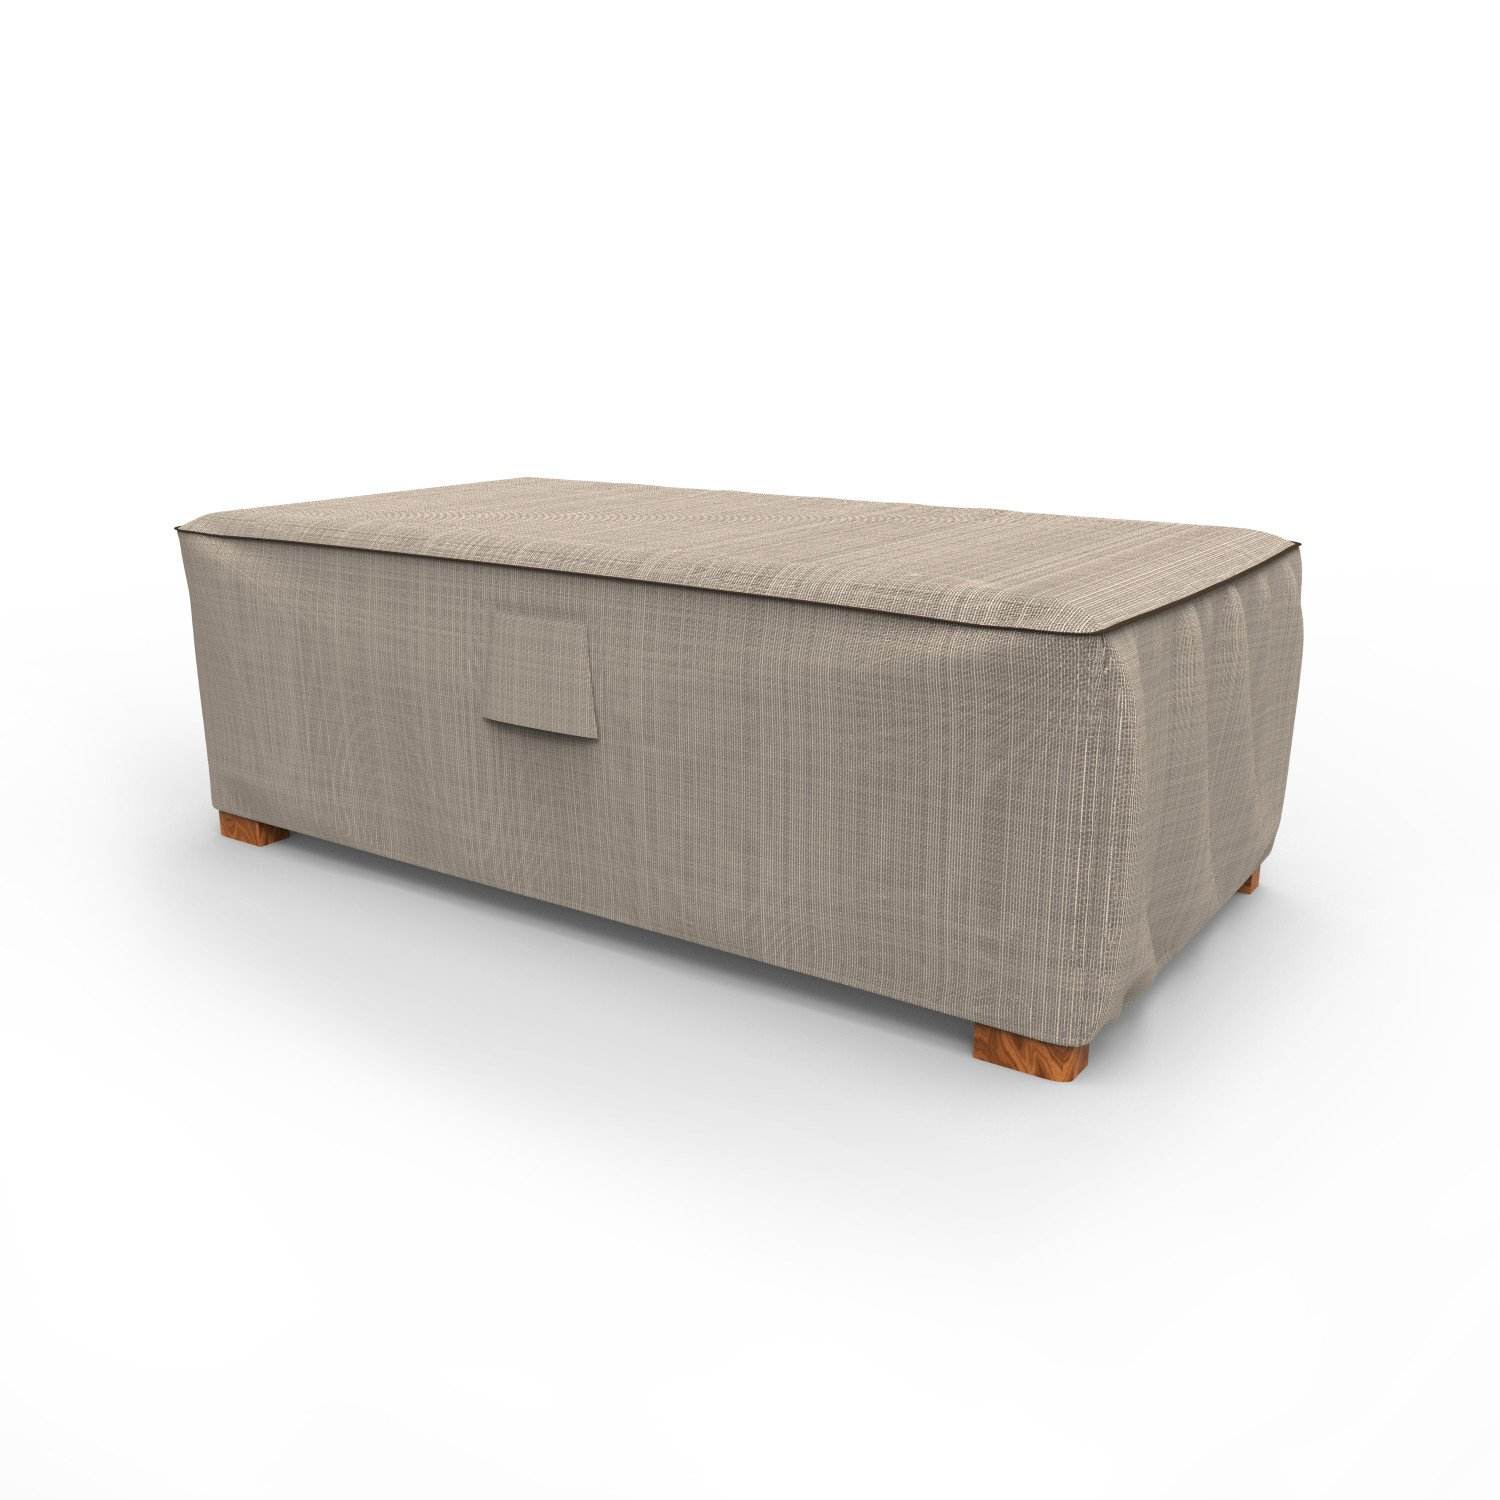 Budge P5A35PMNW2 Neverwet Table Cover, Medium, Tan Tweed